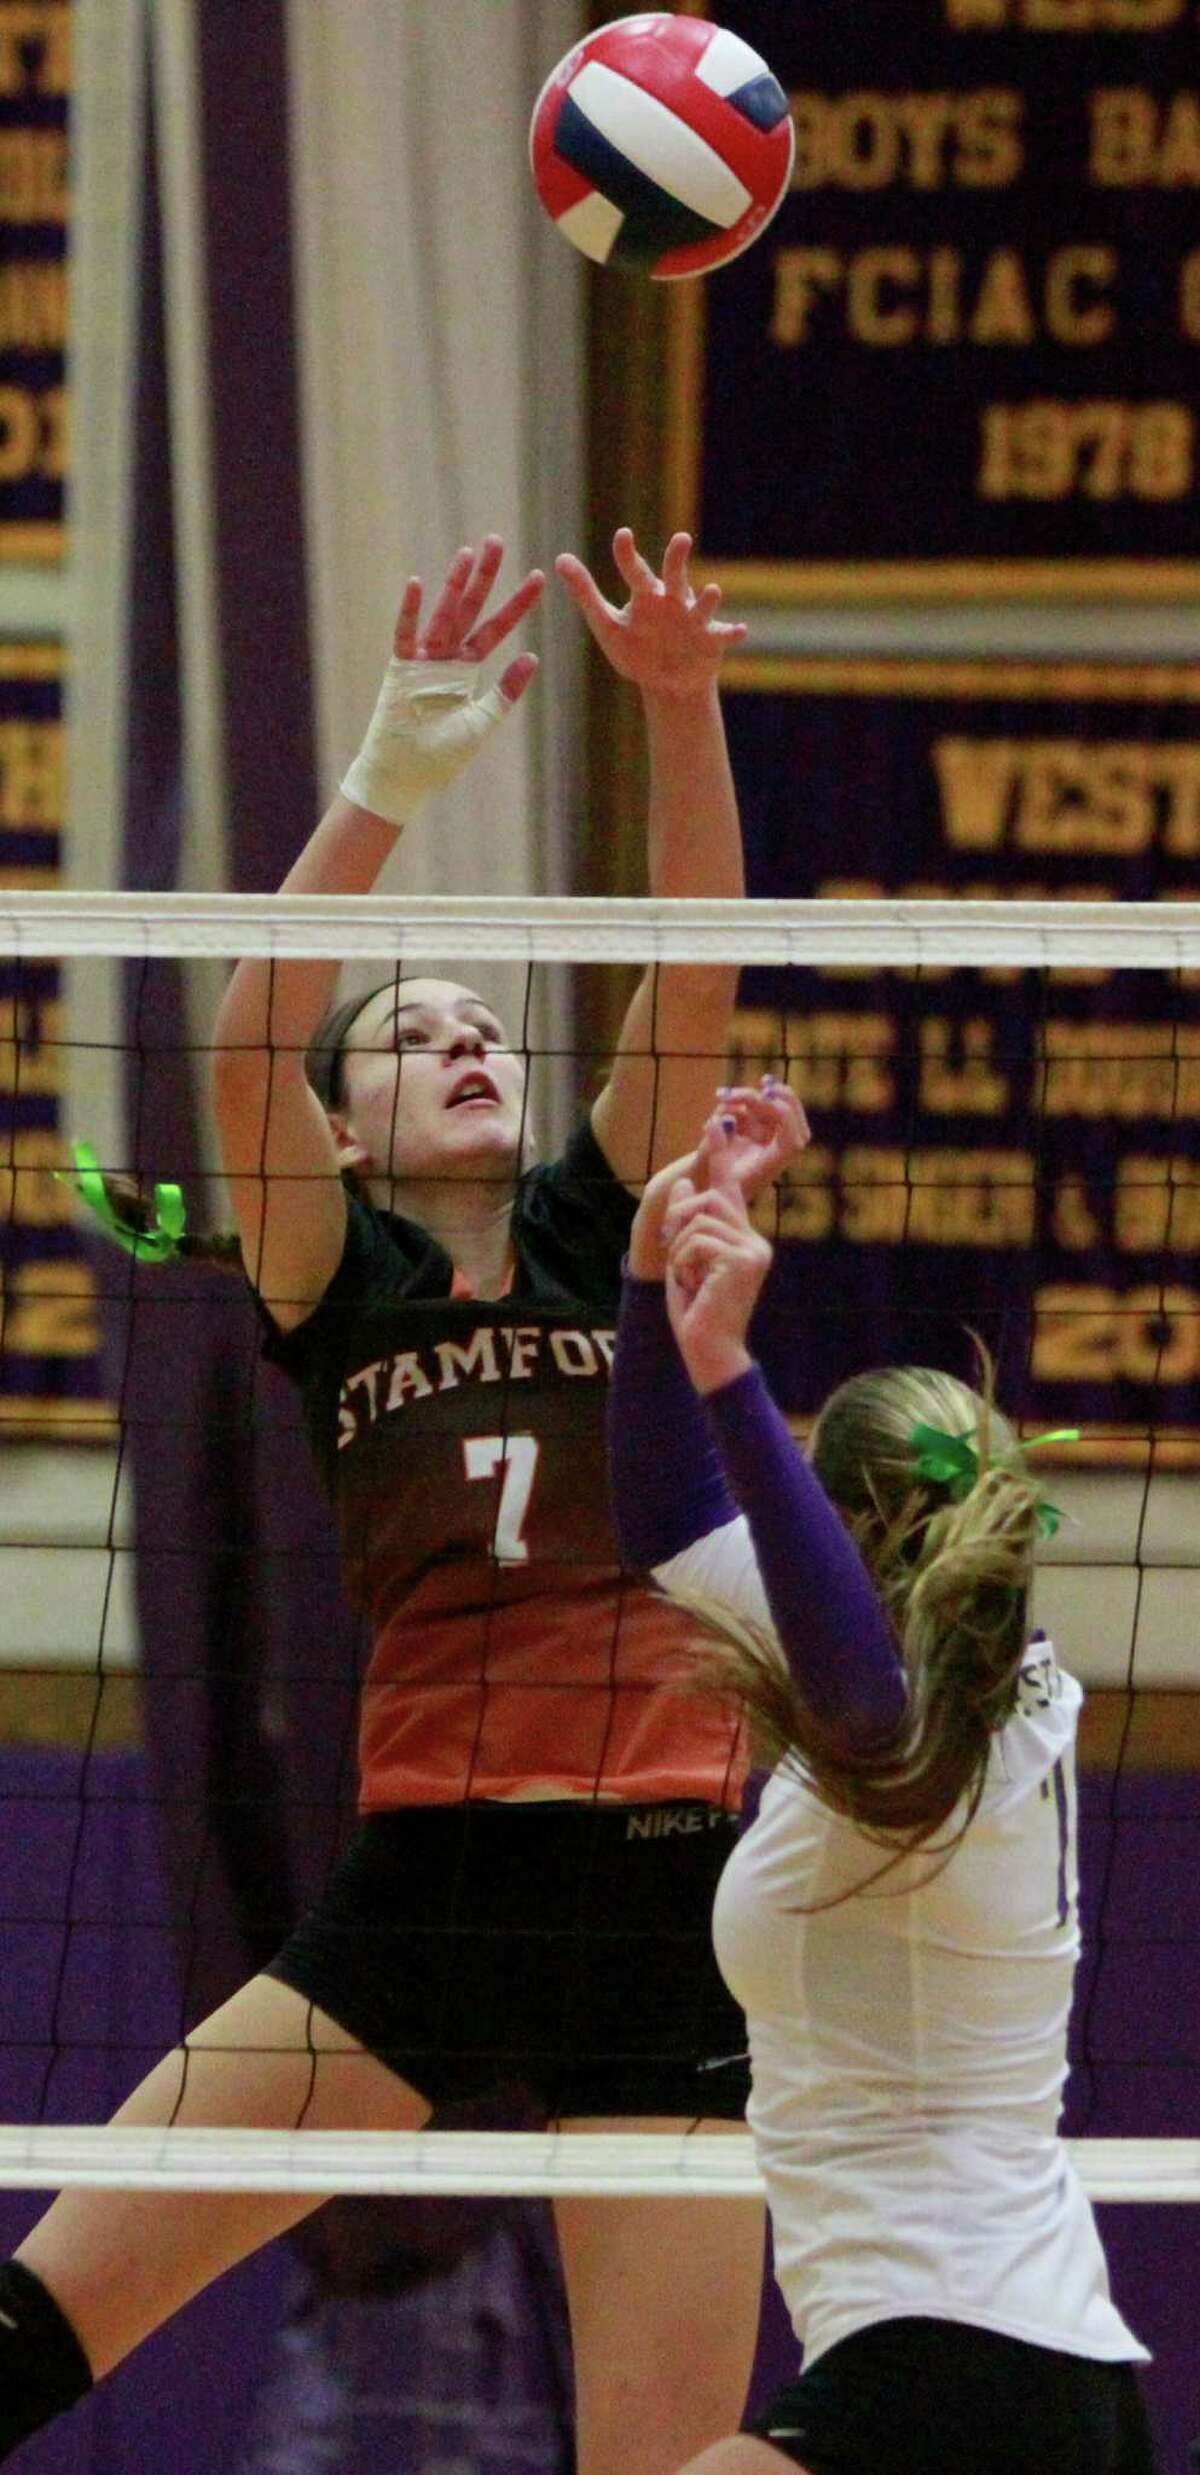 Stamford's Andrea O'Conner taps the ball over the net at Westhill's Haley Liberatore during a varsity girls volletball match in Stamford, Conn. on Oct.13, 2015. Stamford sweep Westhill in three sets, 25-13, 25-20, 25-9 to win the city title in girls volleyball.